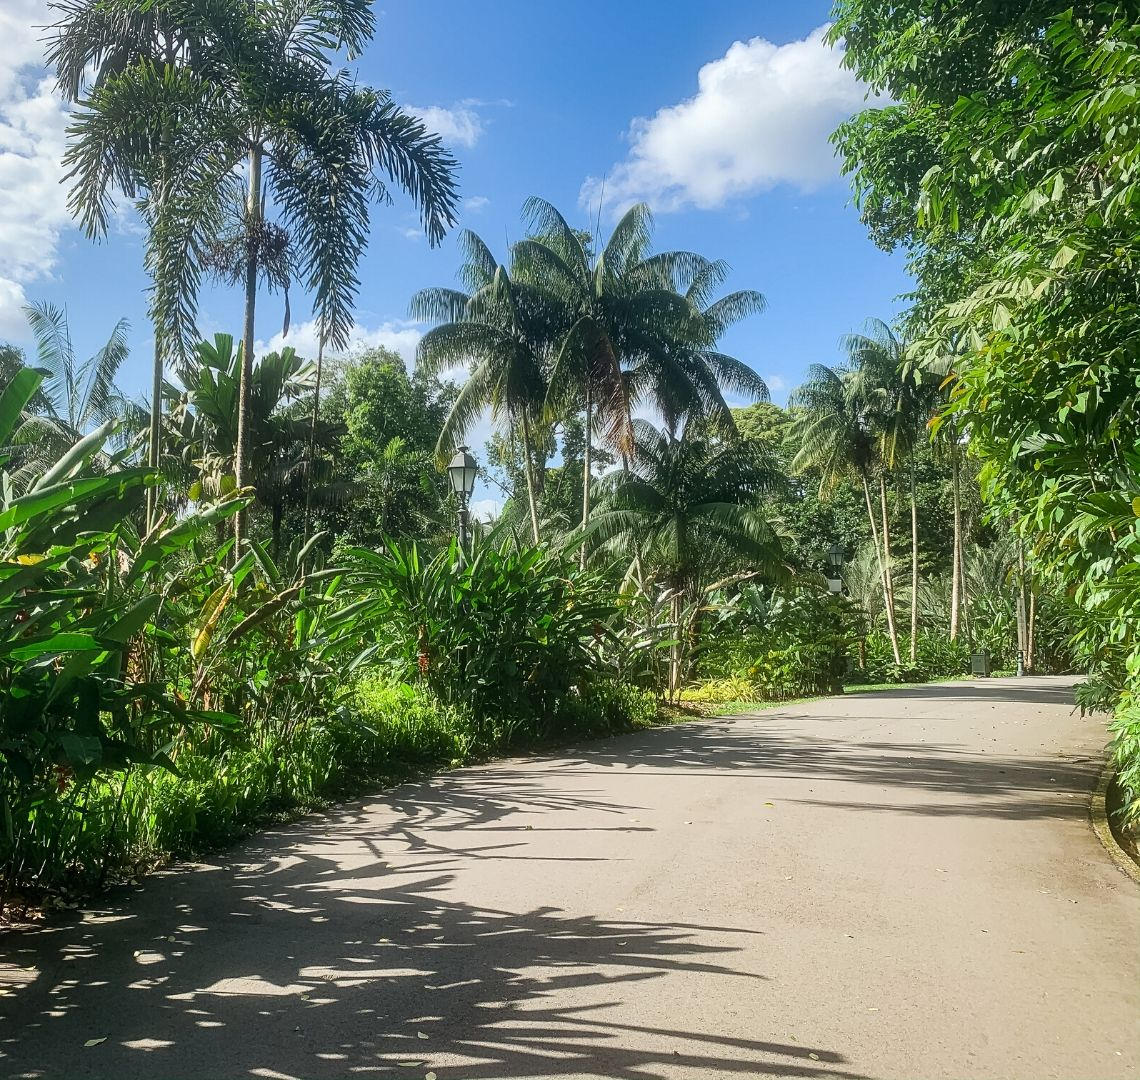 The Expat Bubble - A paved road in Singapore Botanic Gardens curving round to the right. There are lots of palm trees and green tropical plants, the sky is blue with a few clouds in the sky.